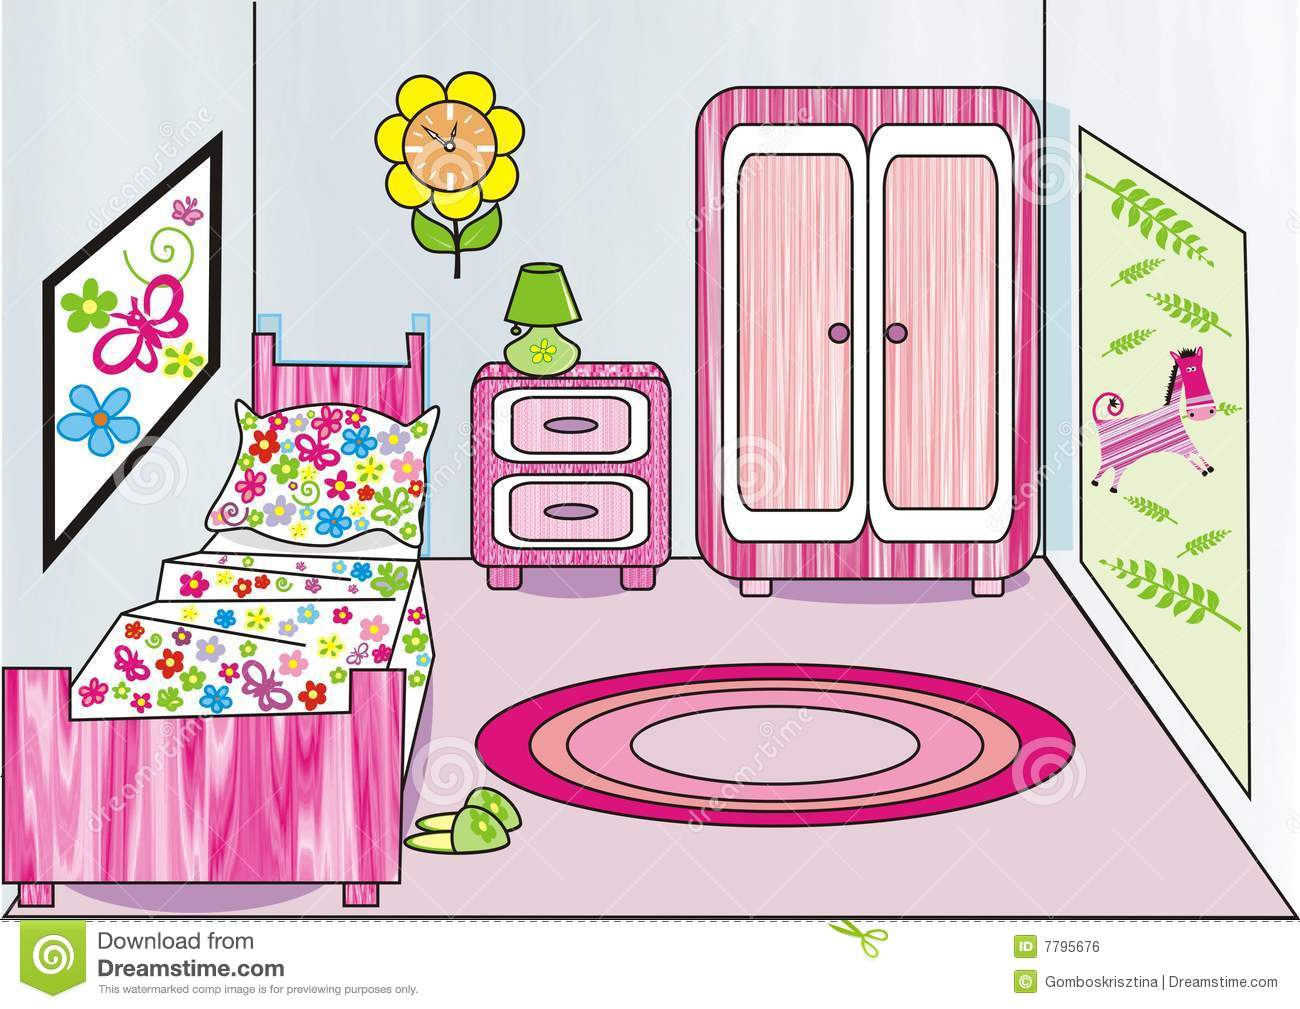 http://www.dreamstime.com/royalty-free-stock-image-girl-s-room-image7795676